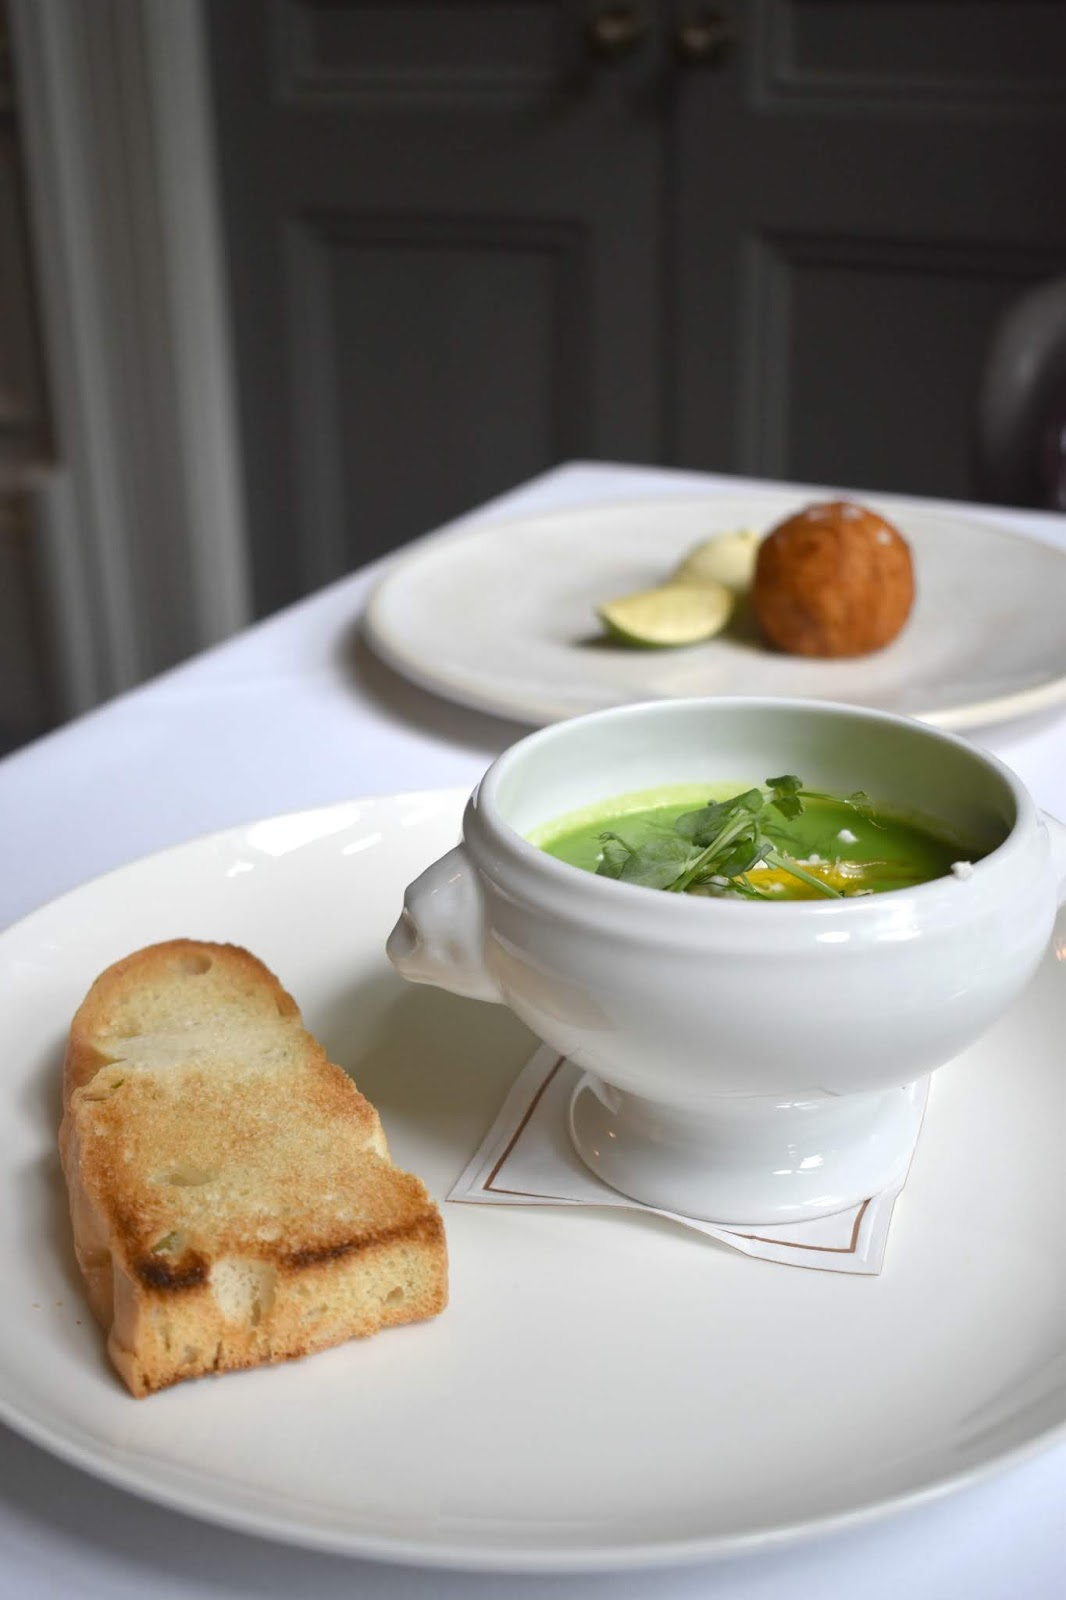 Lunch at Jesmond Dene House - Pea and Mint Soup